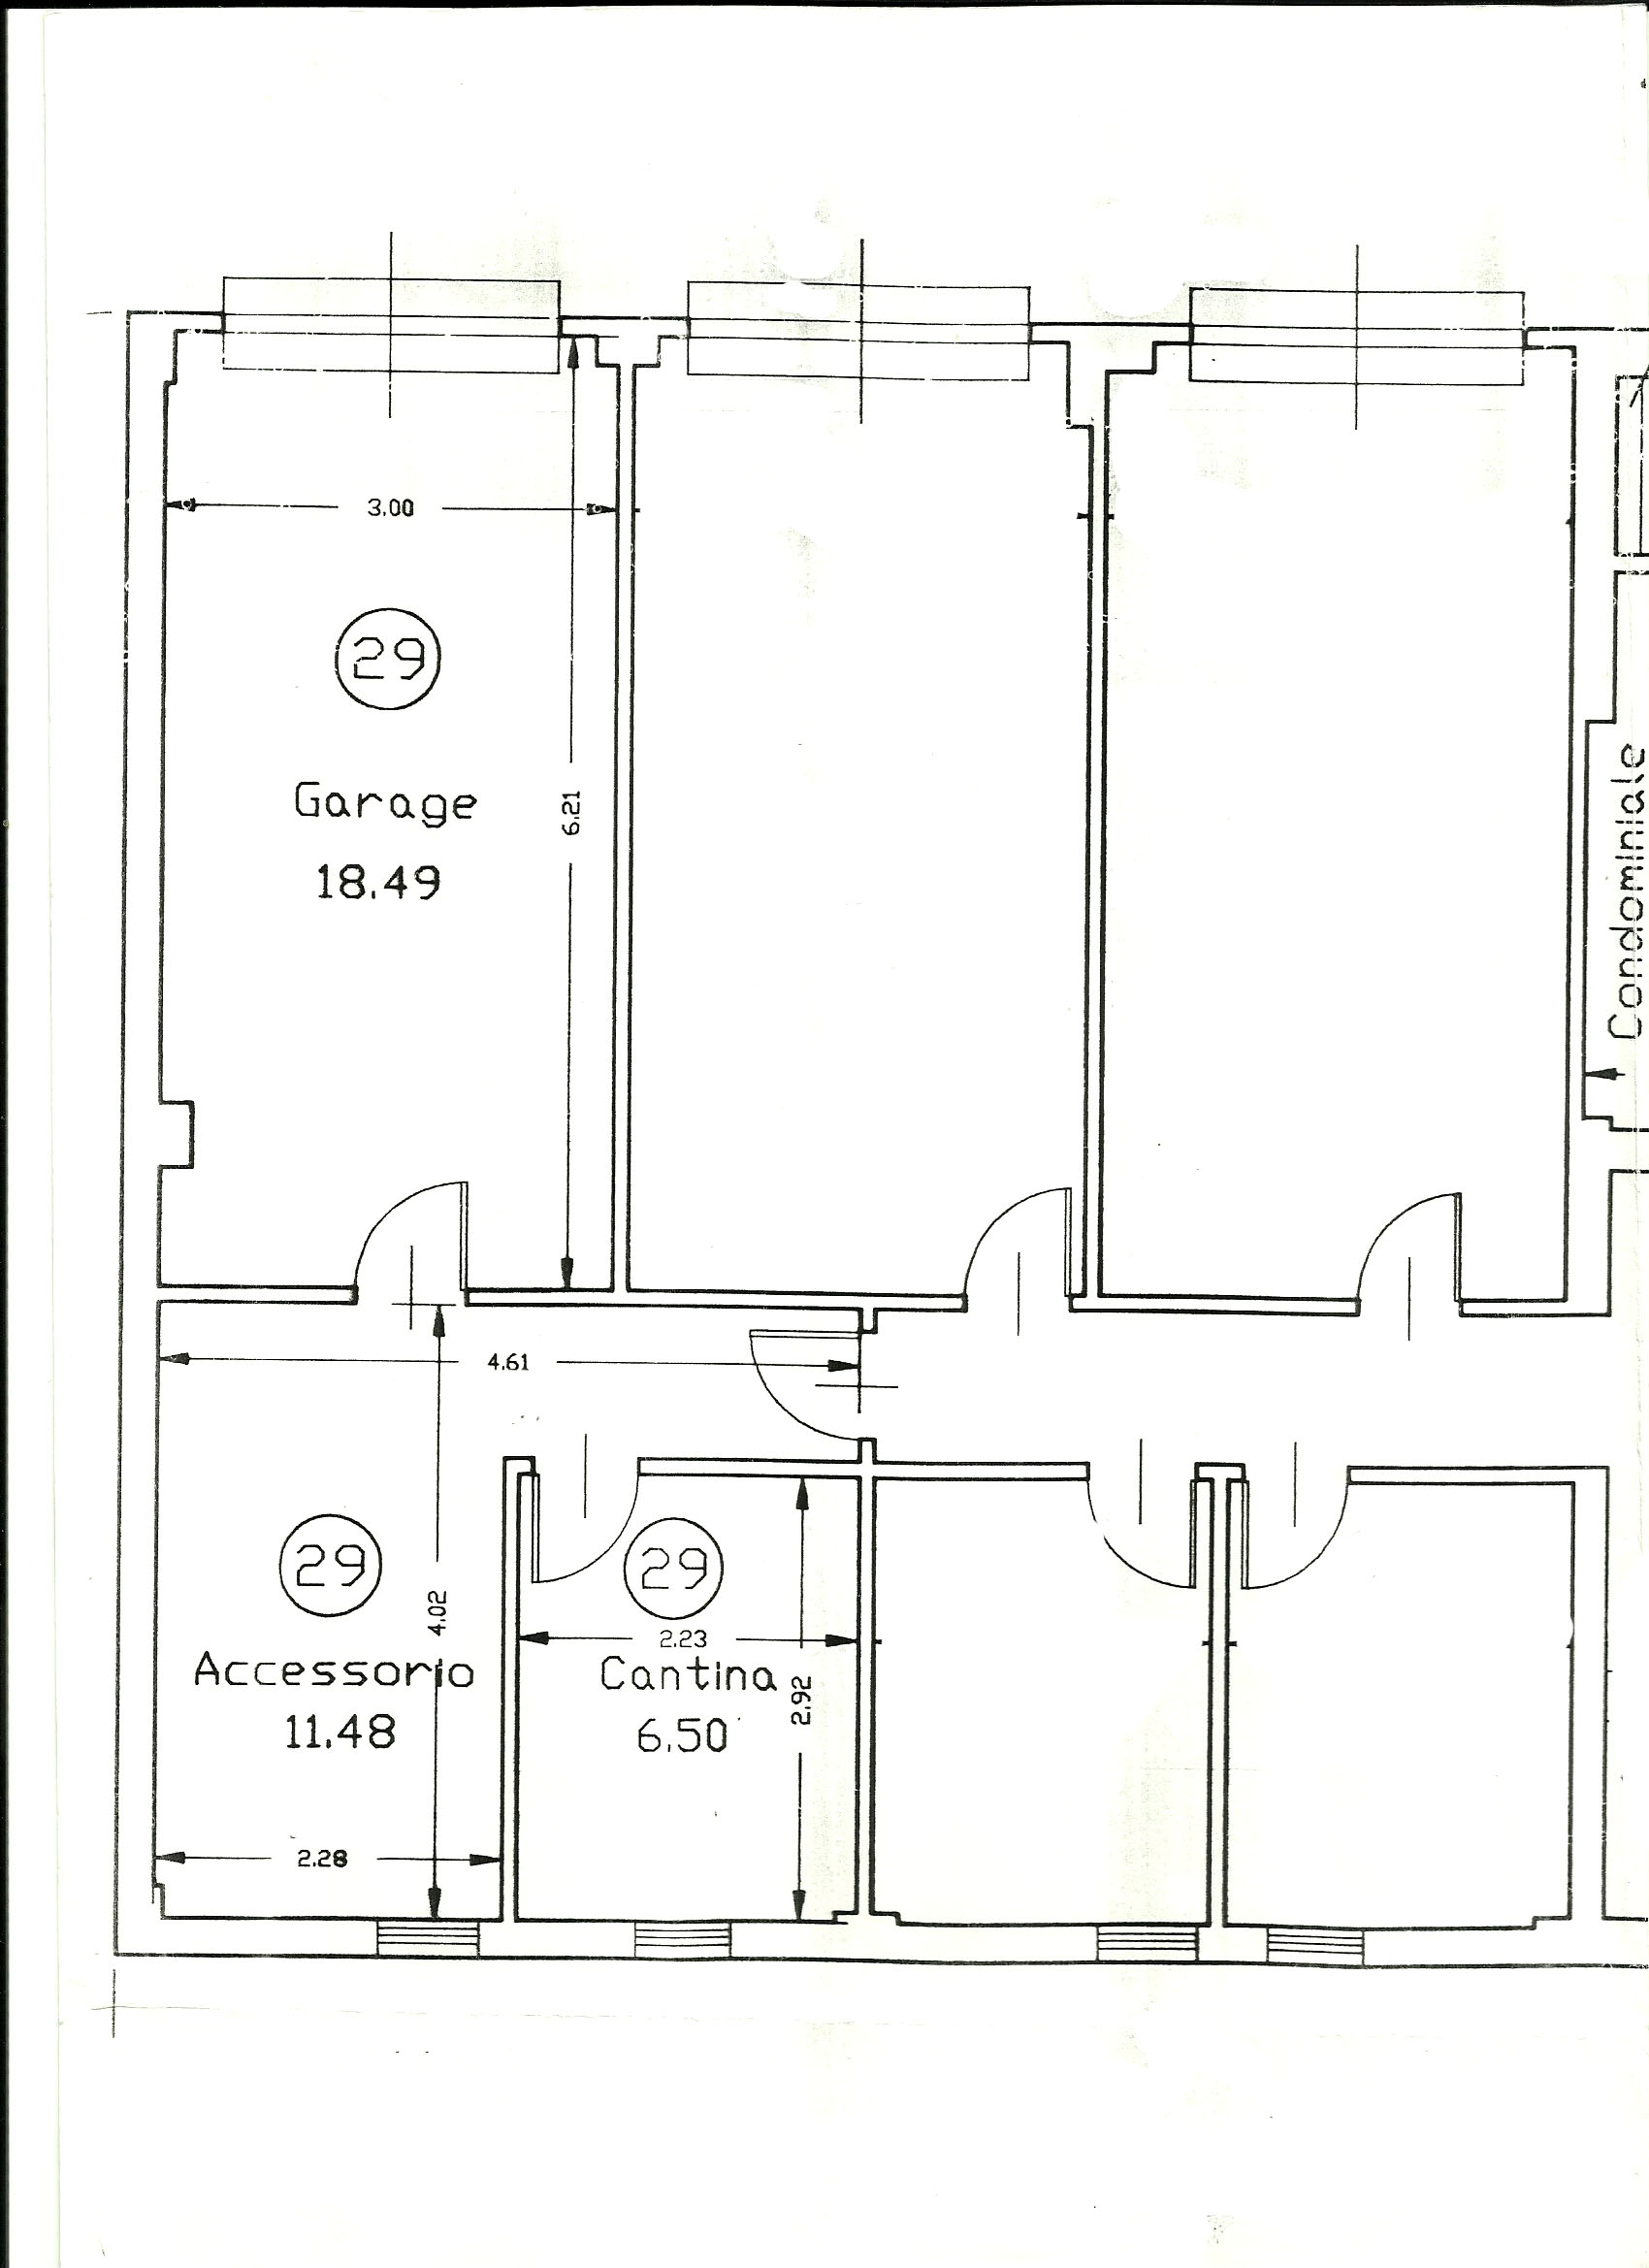 Apartment for sale, ref. R/561 (Plan 2/2)